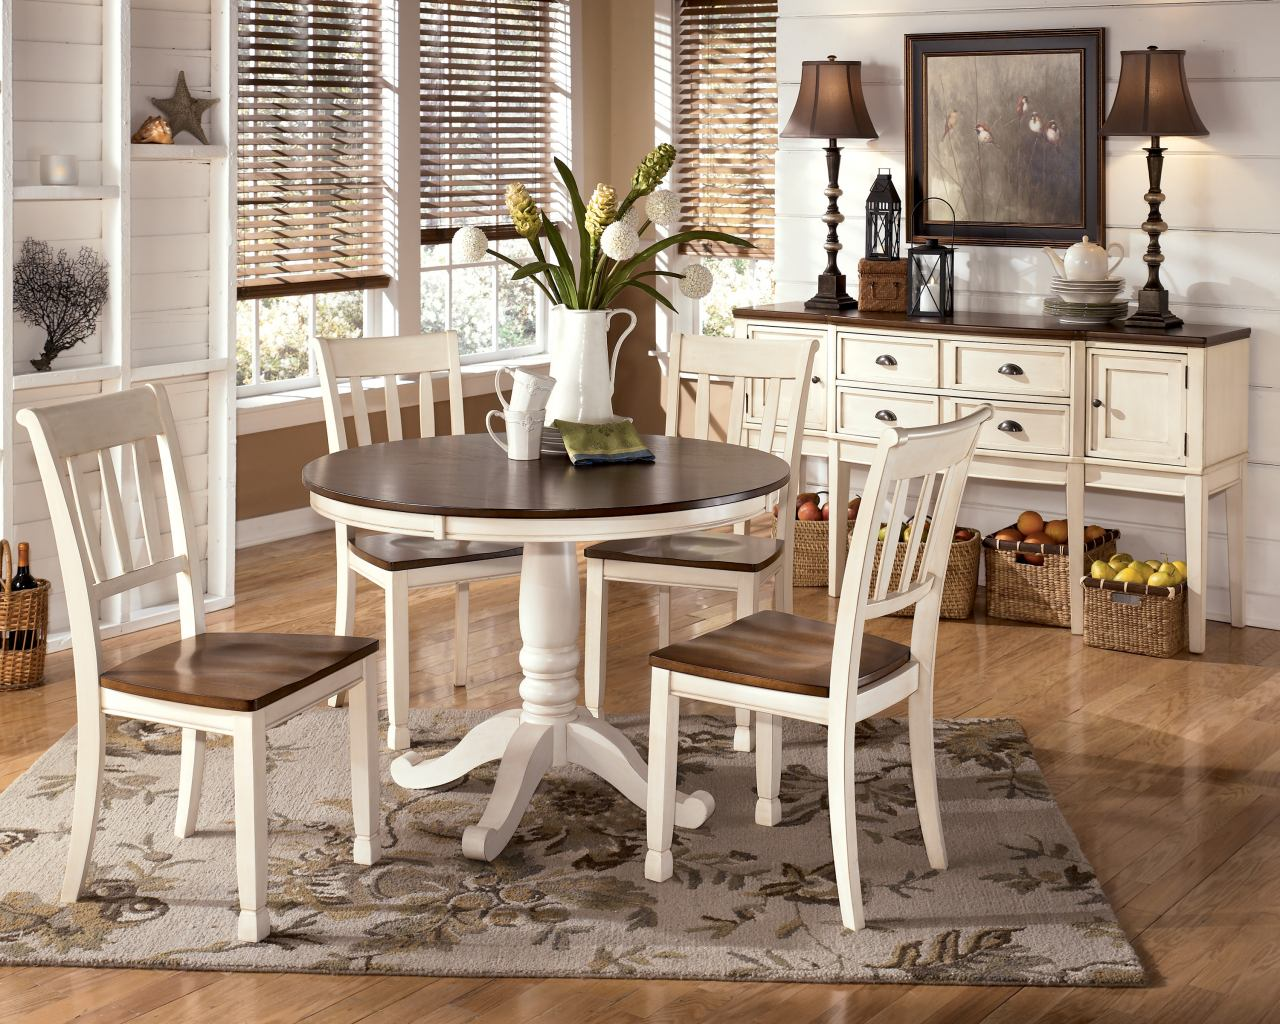 whitesburg 5 piece round dining table set in brown white kitchen table and chairs Whitesburg 5 Piece Round Dining Table Set in Brown White